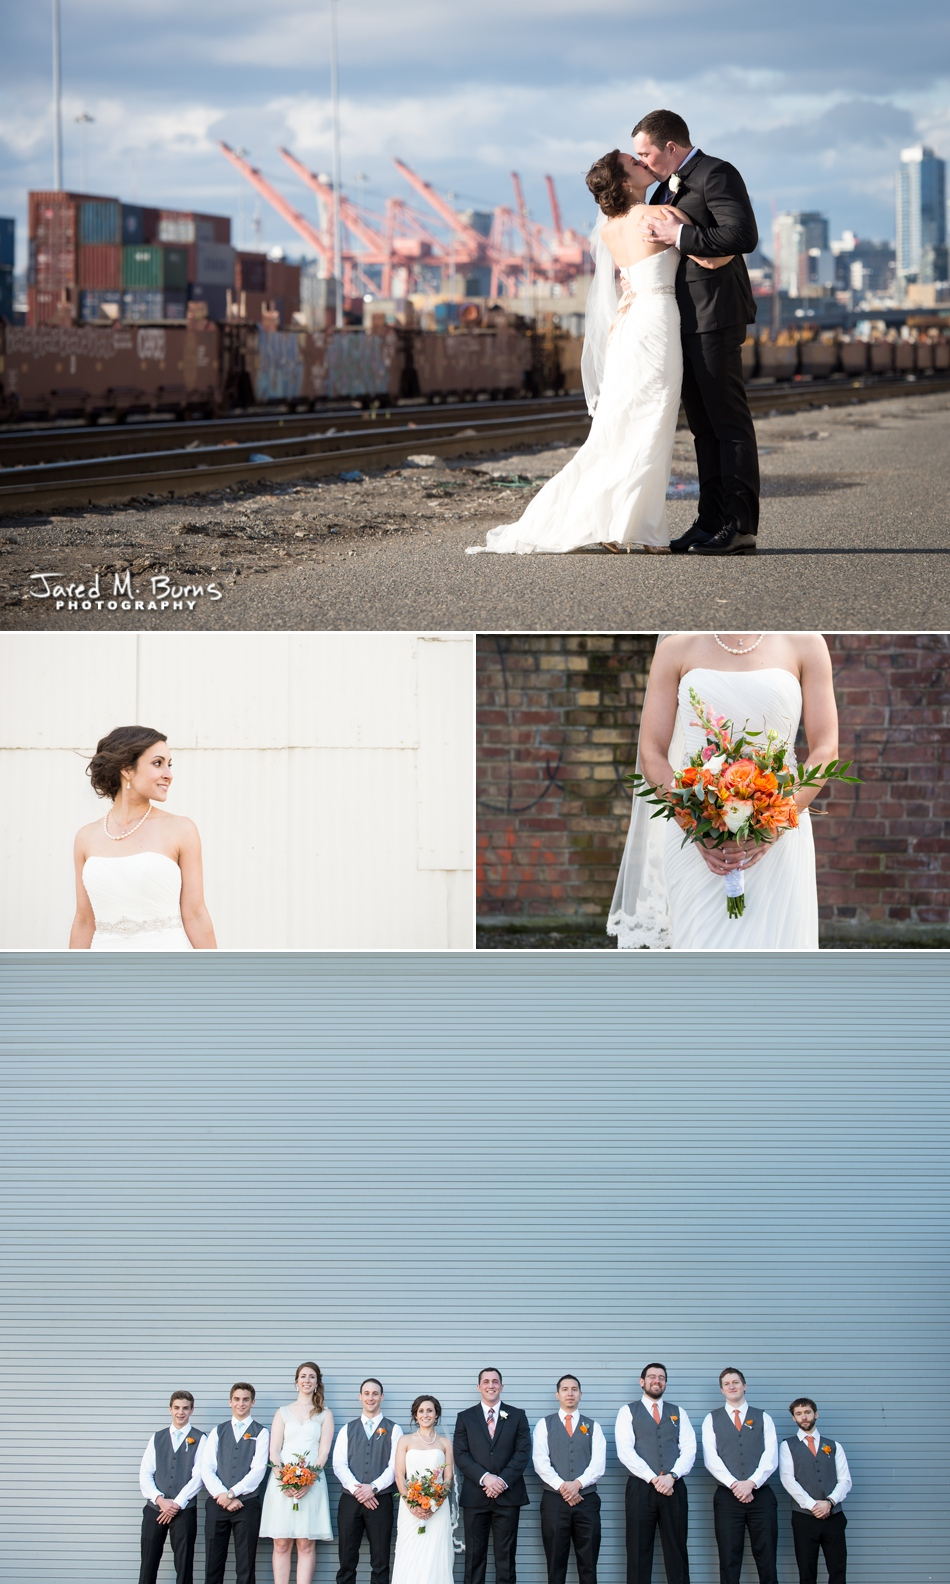 Seattle Wedding Photographer, Jared M. Burns - Sodo wedding near Seattle train yards